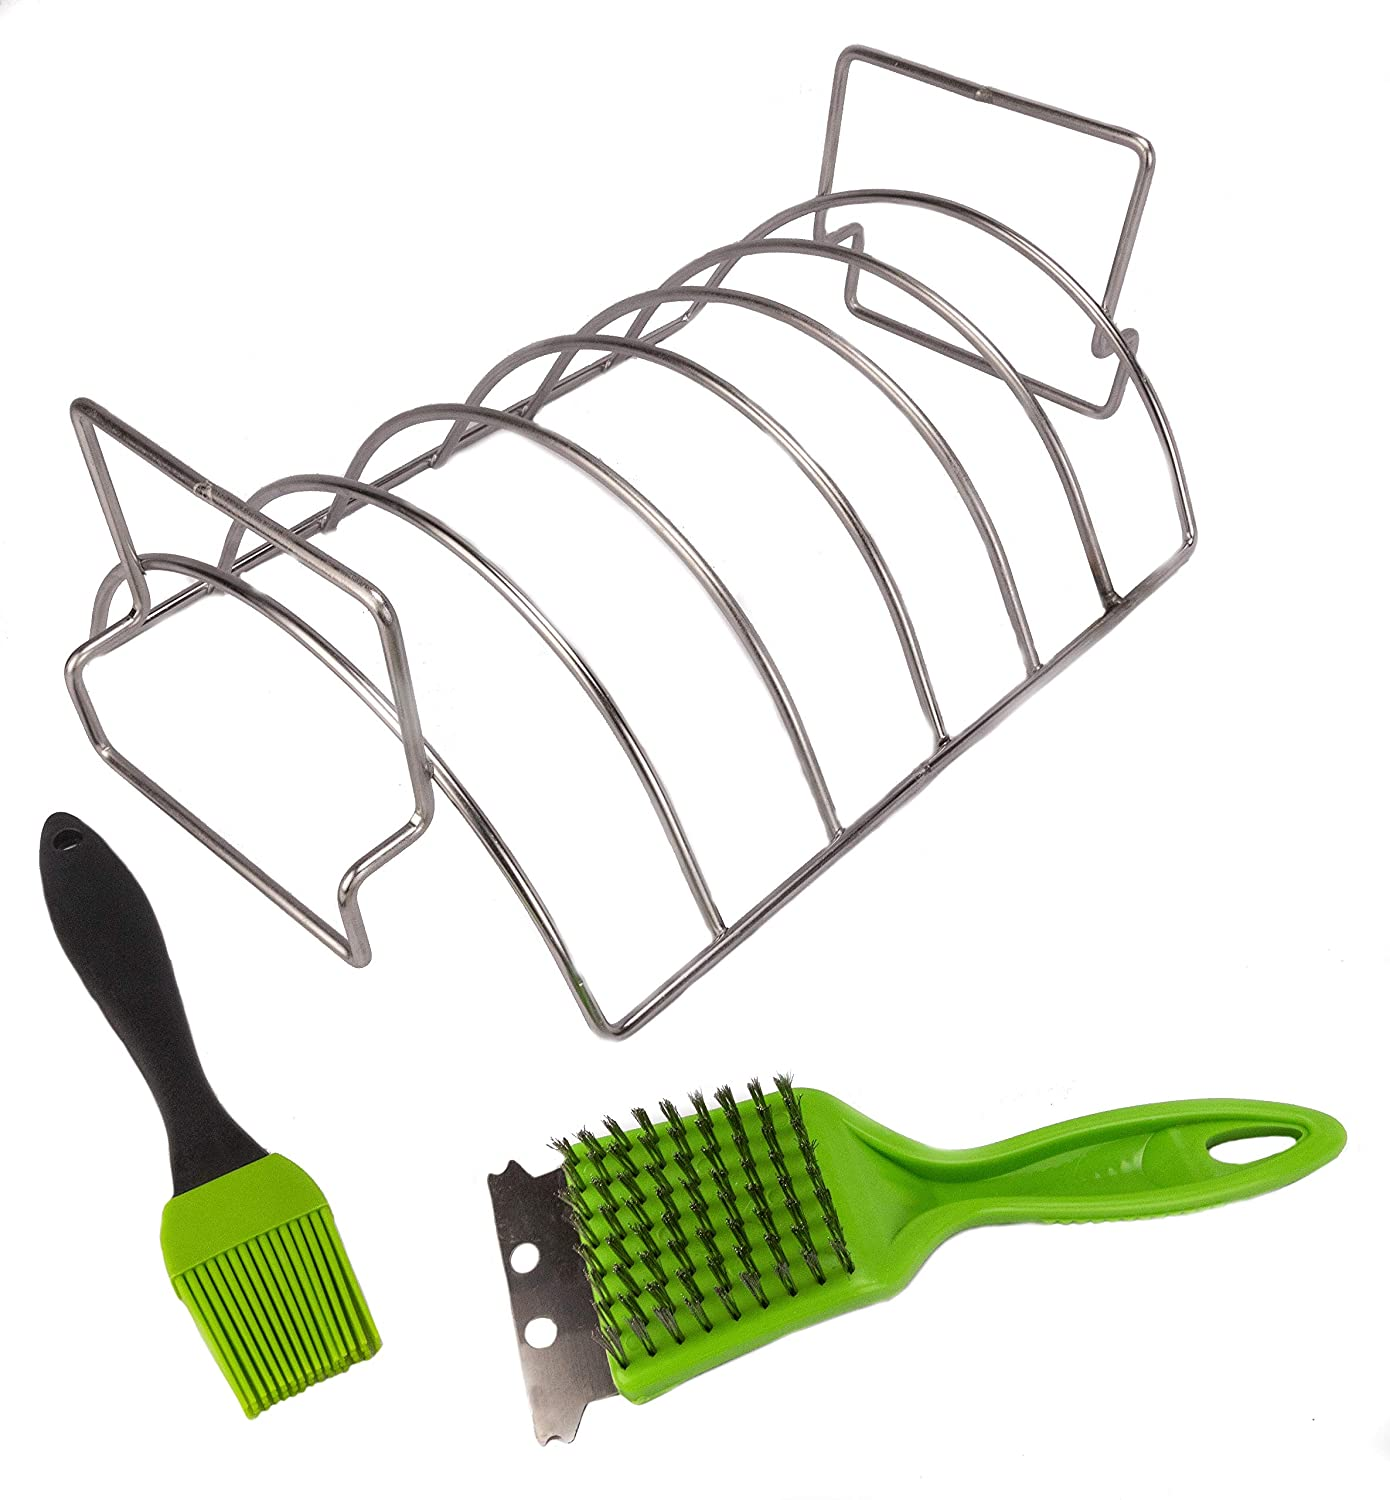 J-Line Classic Design Max 83% OFF Rib Grilling Roasting Rack Re and - for Smoker BBQ